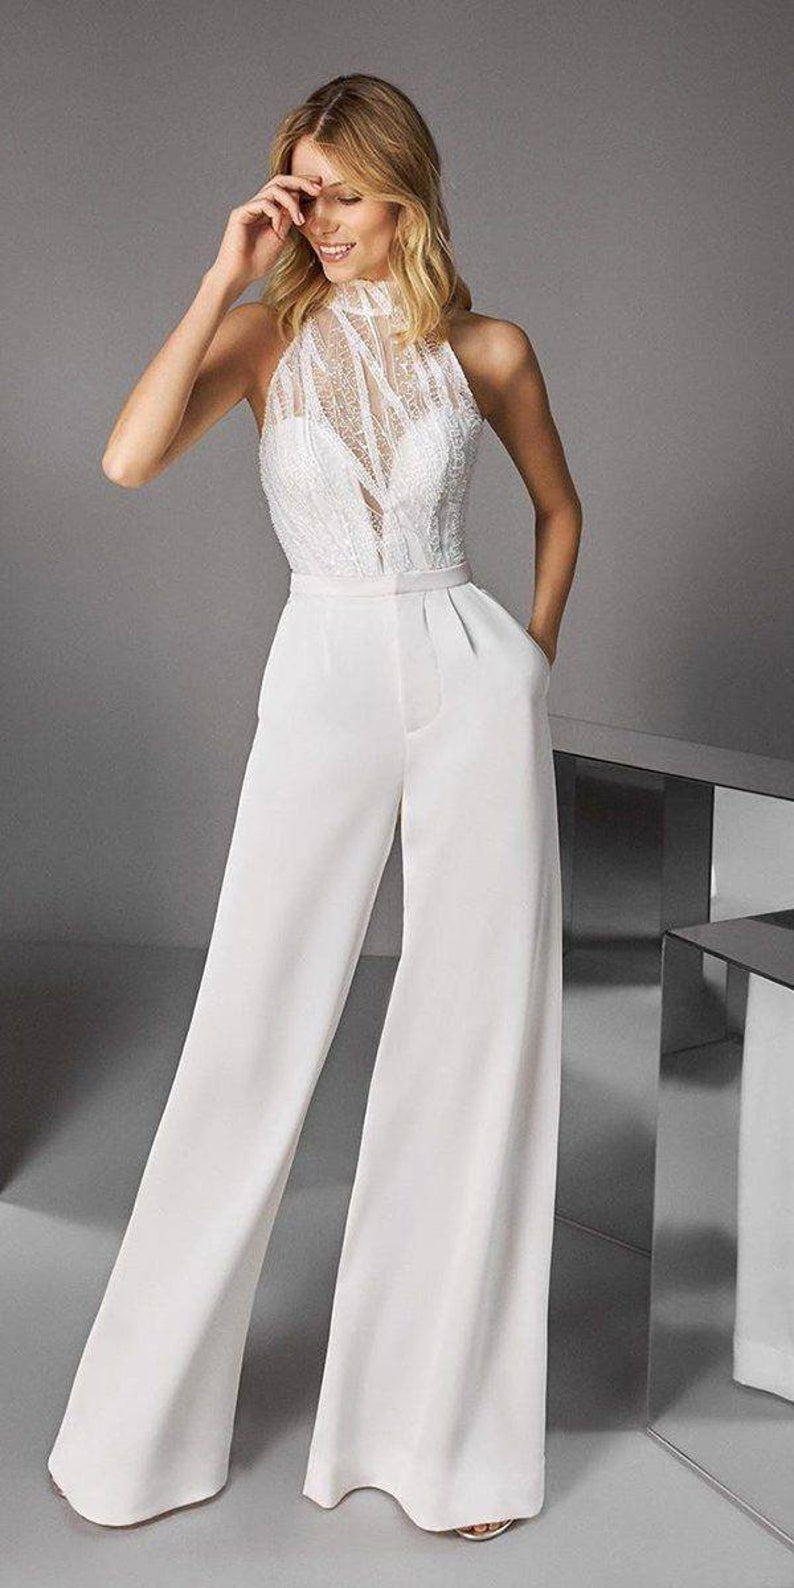 White Jumpsuit Etsy In 2020 Wedding Dress Couture Wedding Dresses Unique White Jumpsuit Wedding